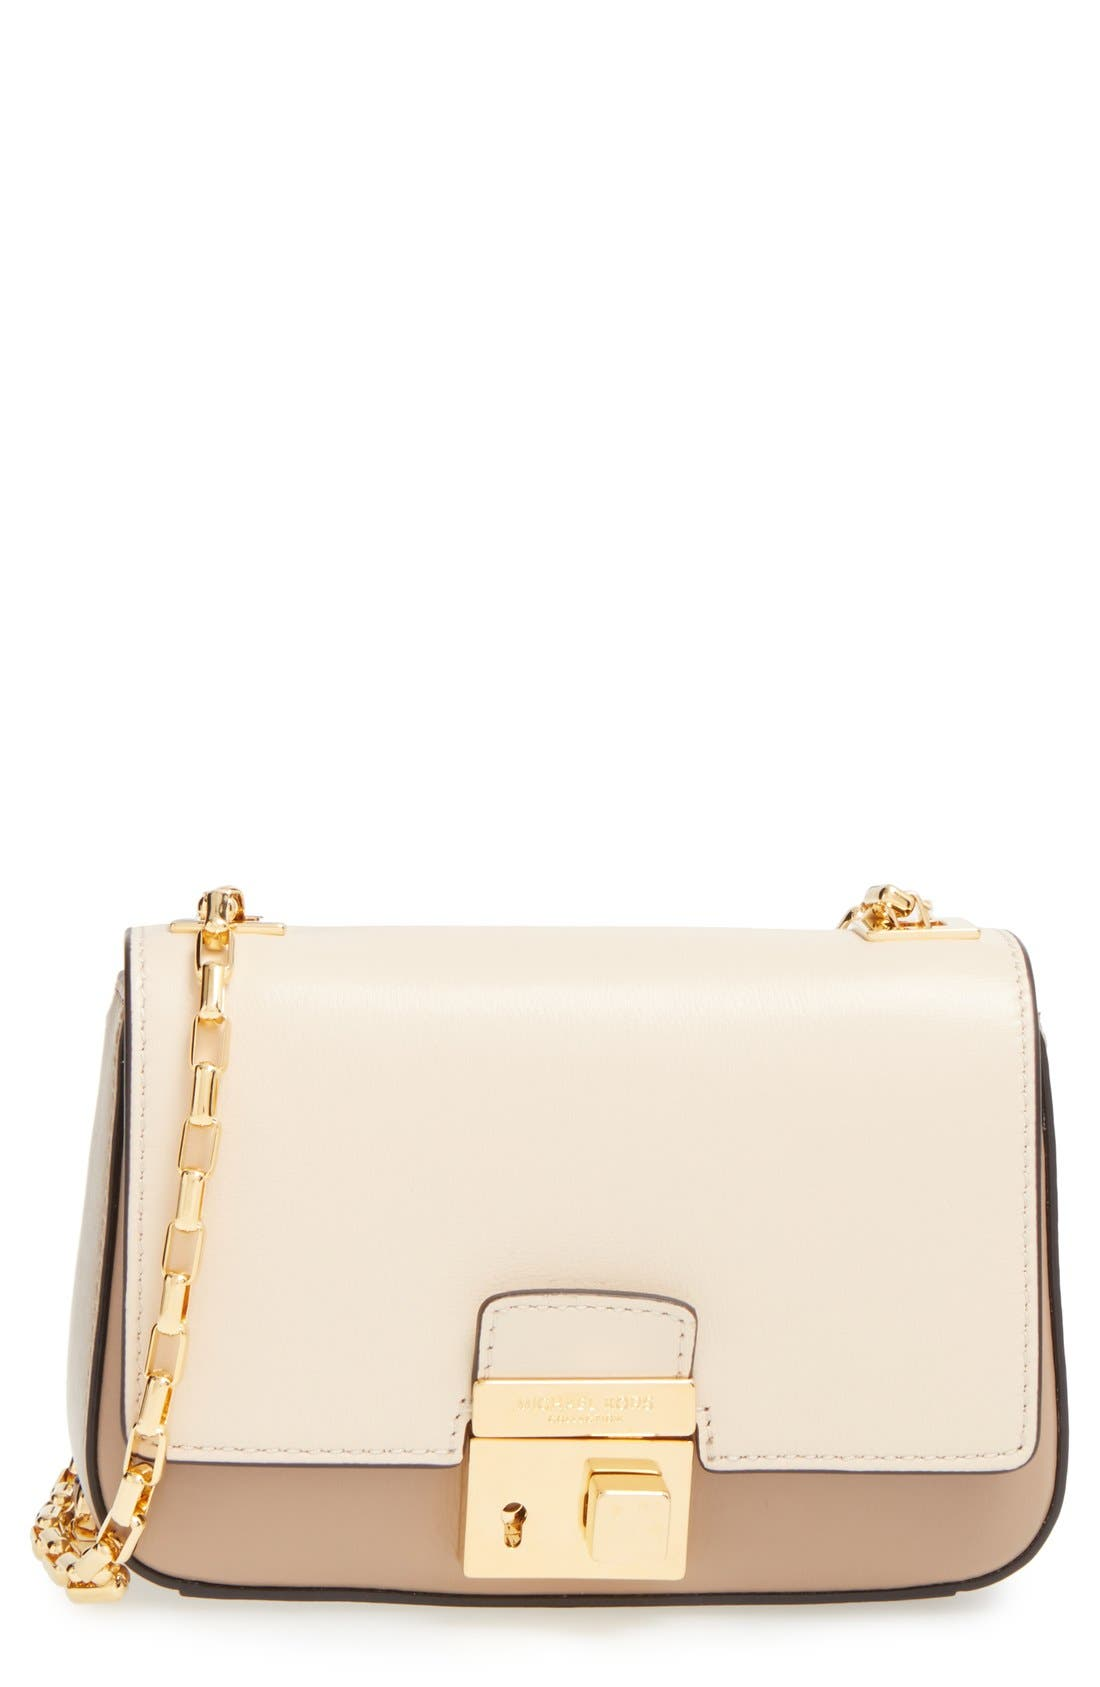 Alternate Image 1 Selected - Michael Kors 'Small Gia' Chain Strap Leather Shoulder Bag